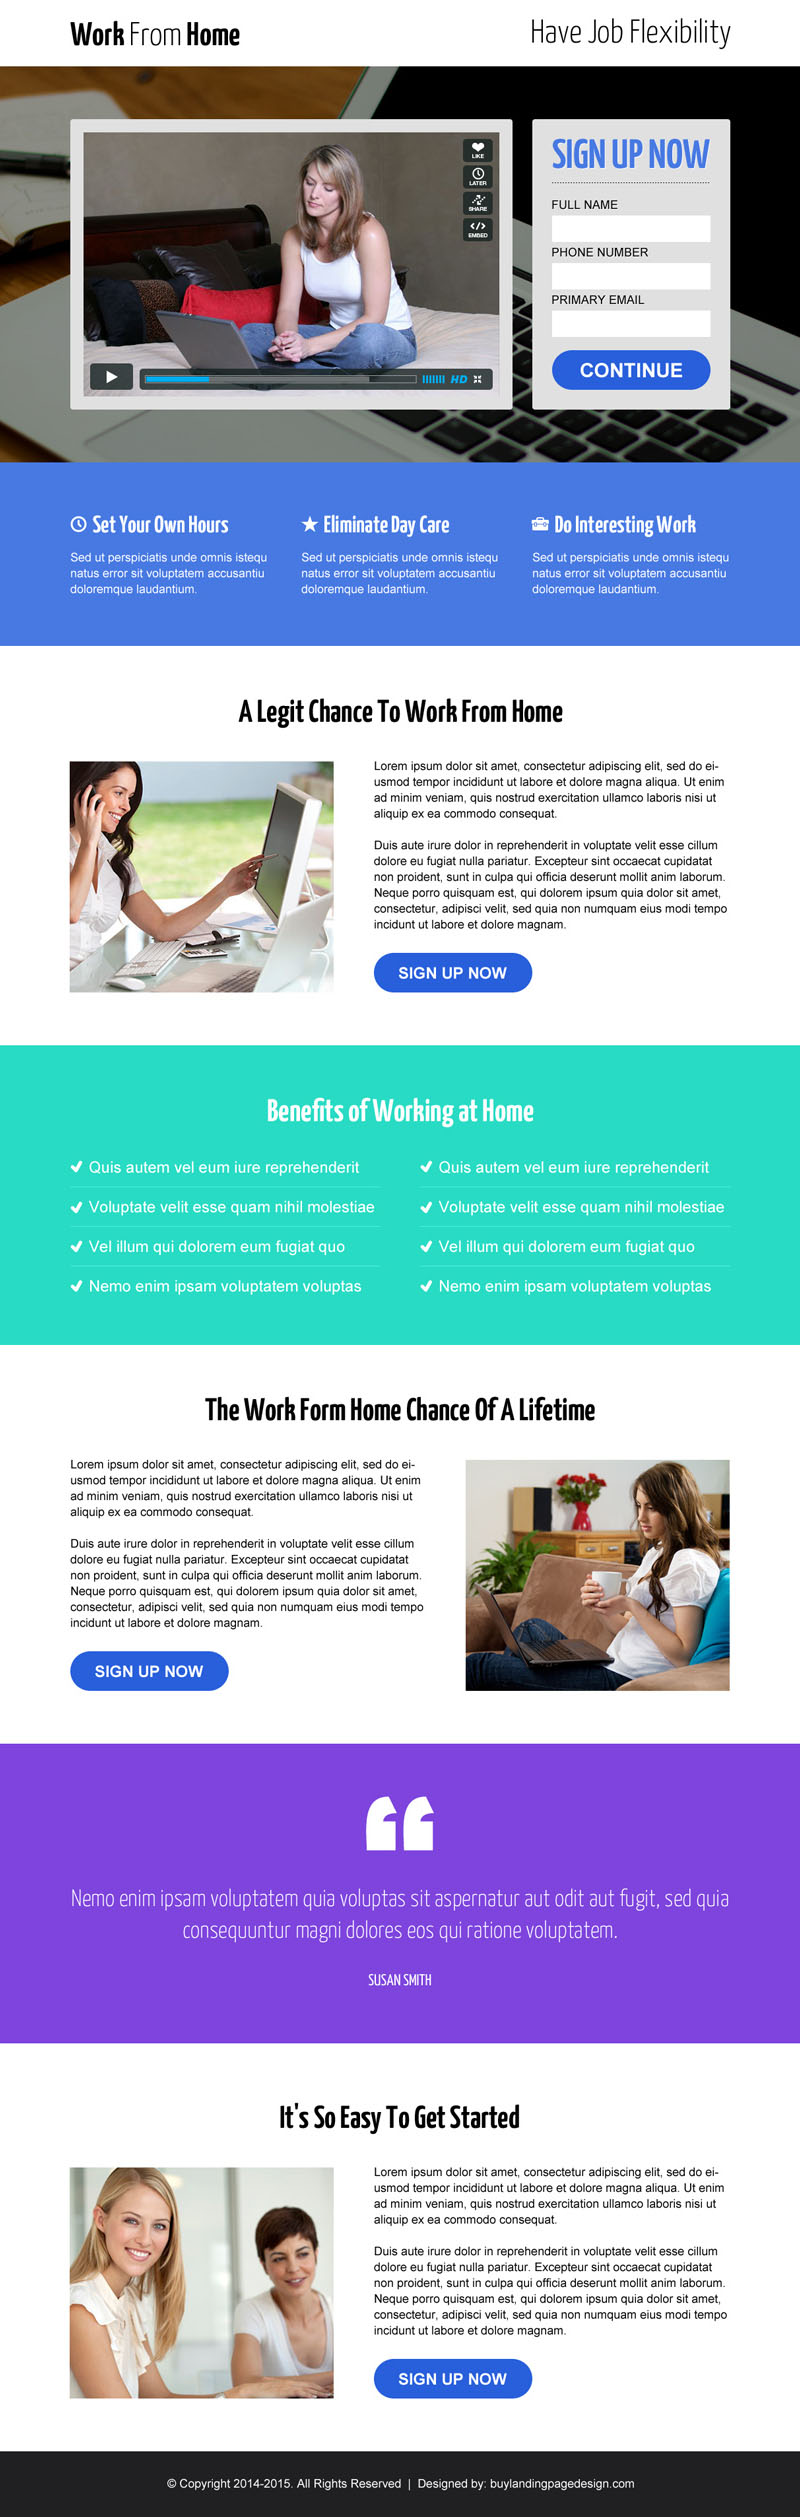 work-from-home-video-lead-capture-landing-page-design-template-023